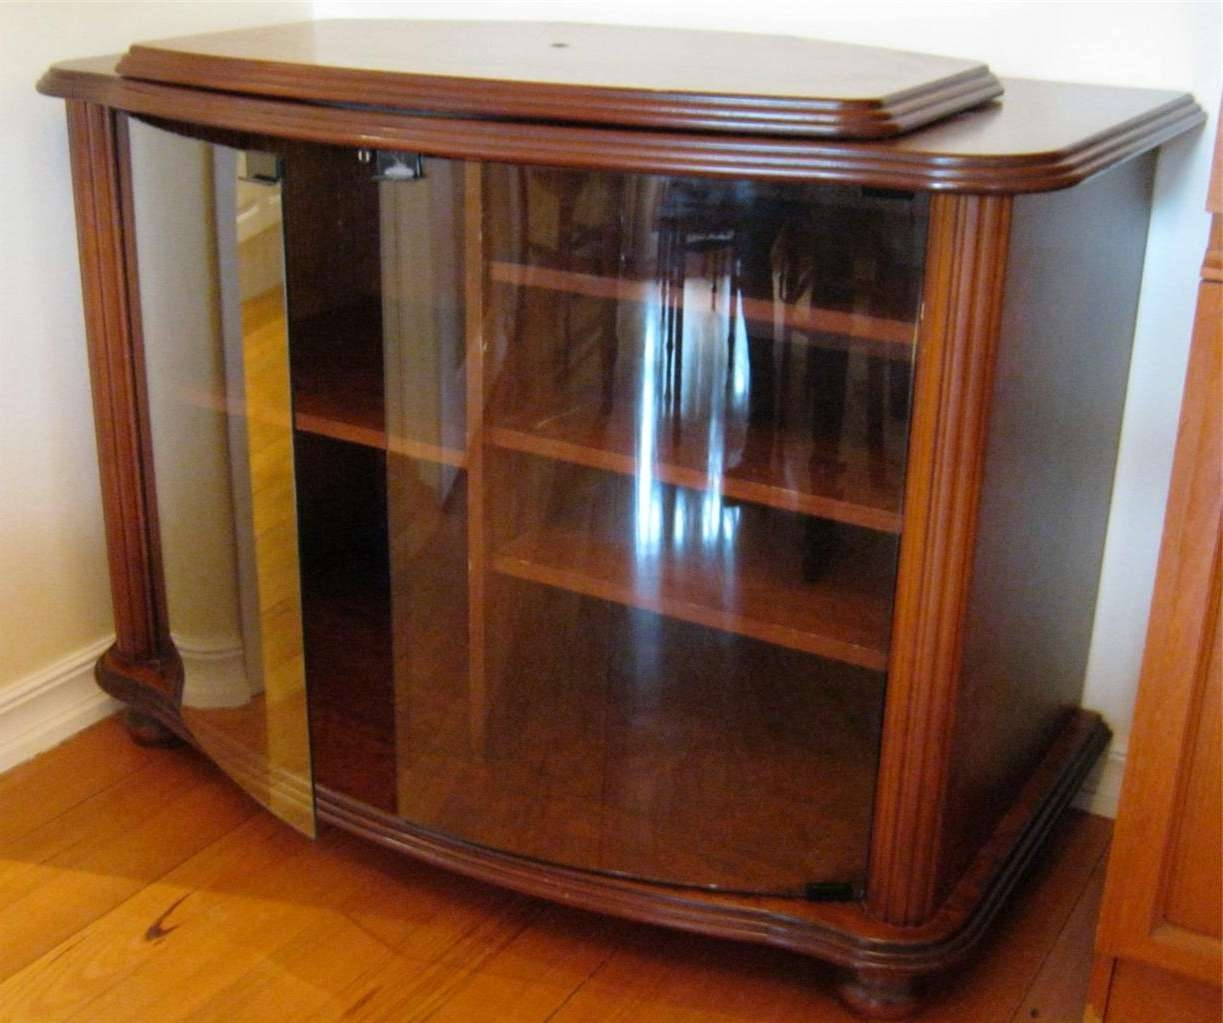 Corner Tv Stand Cabinet With Frameless Glass Doors – Decofurnish With Corner Tv Cabinets With Glass Doors (View 4 of 20)